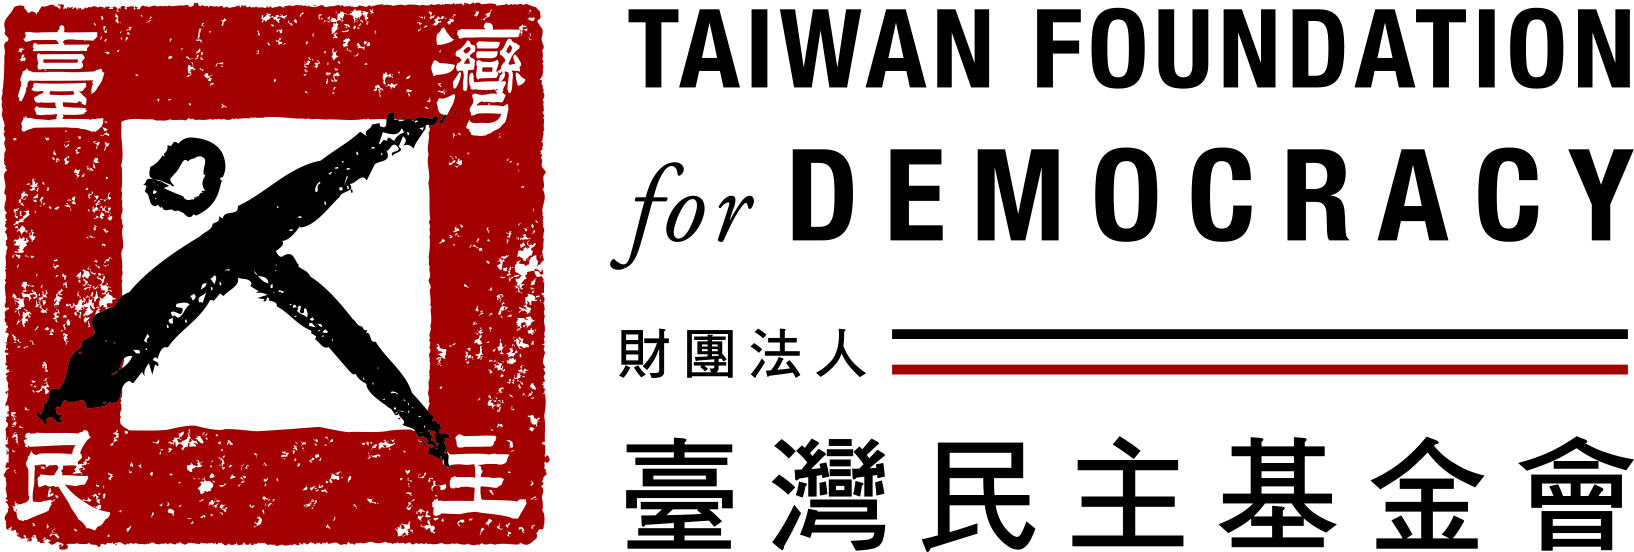 Taiwan foundation